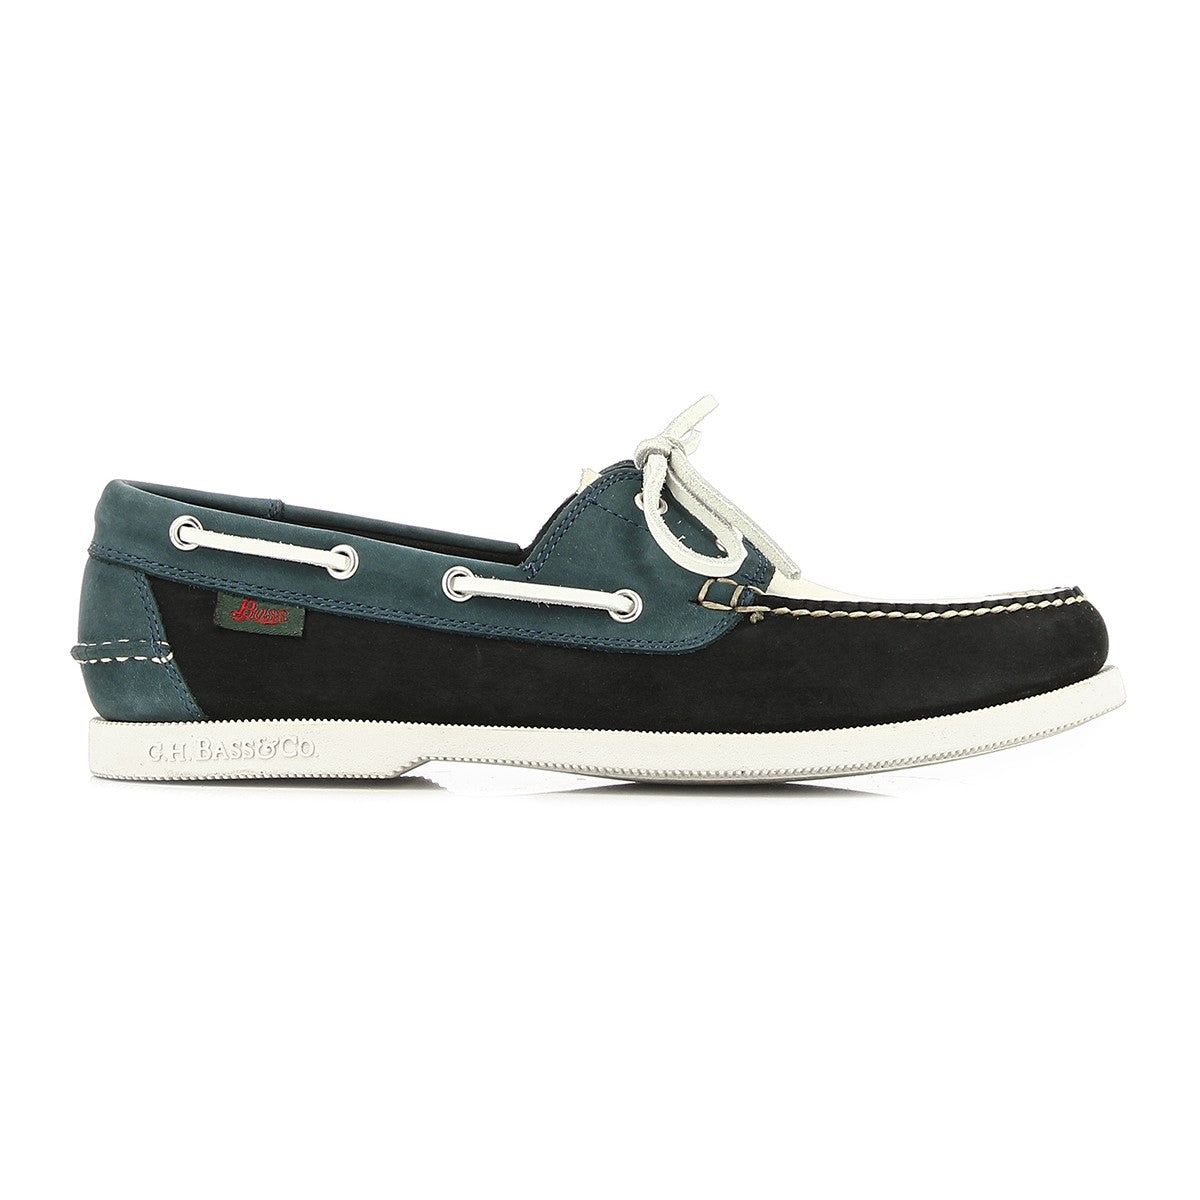 Jetty II Boater Blue & Navy Nubuck